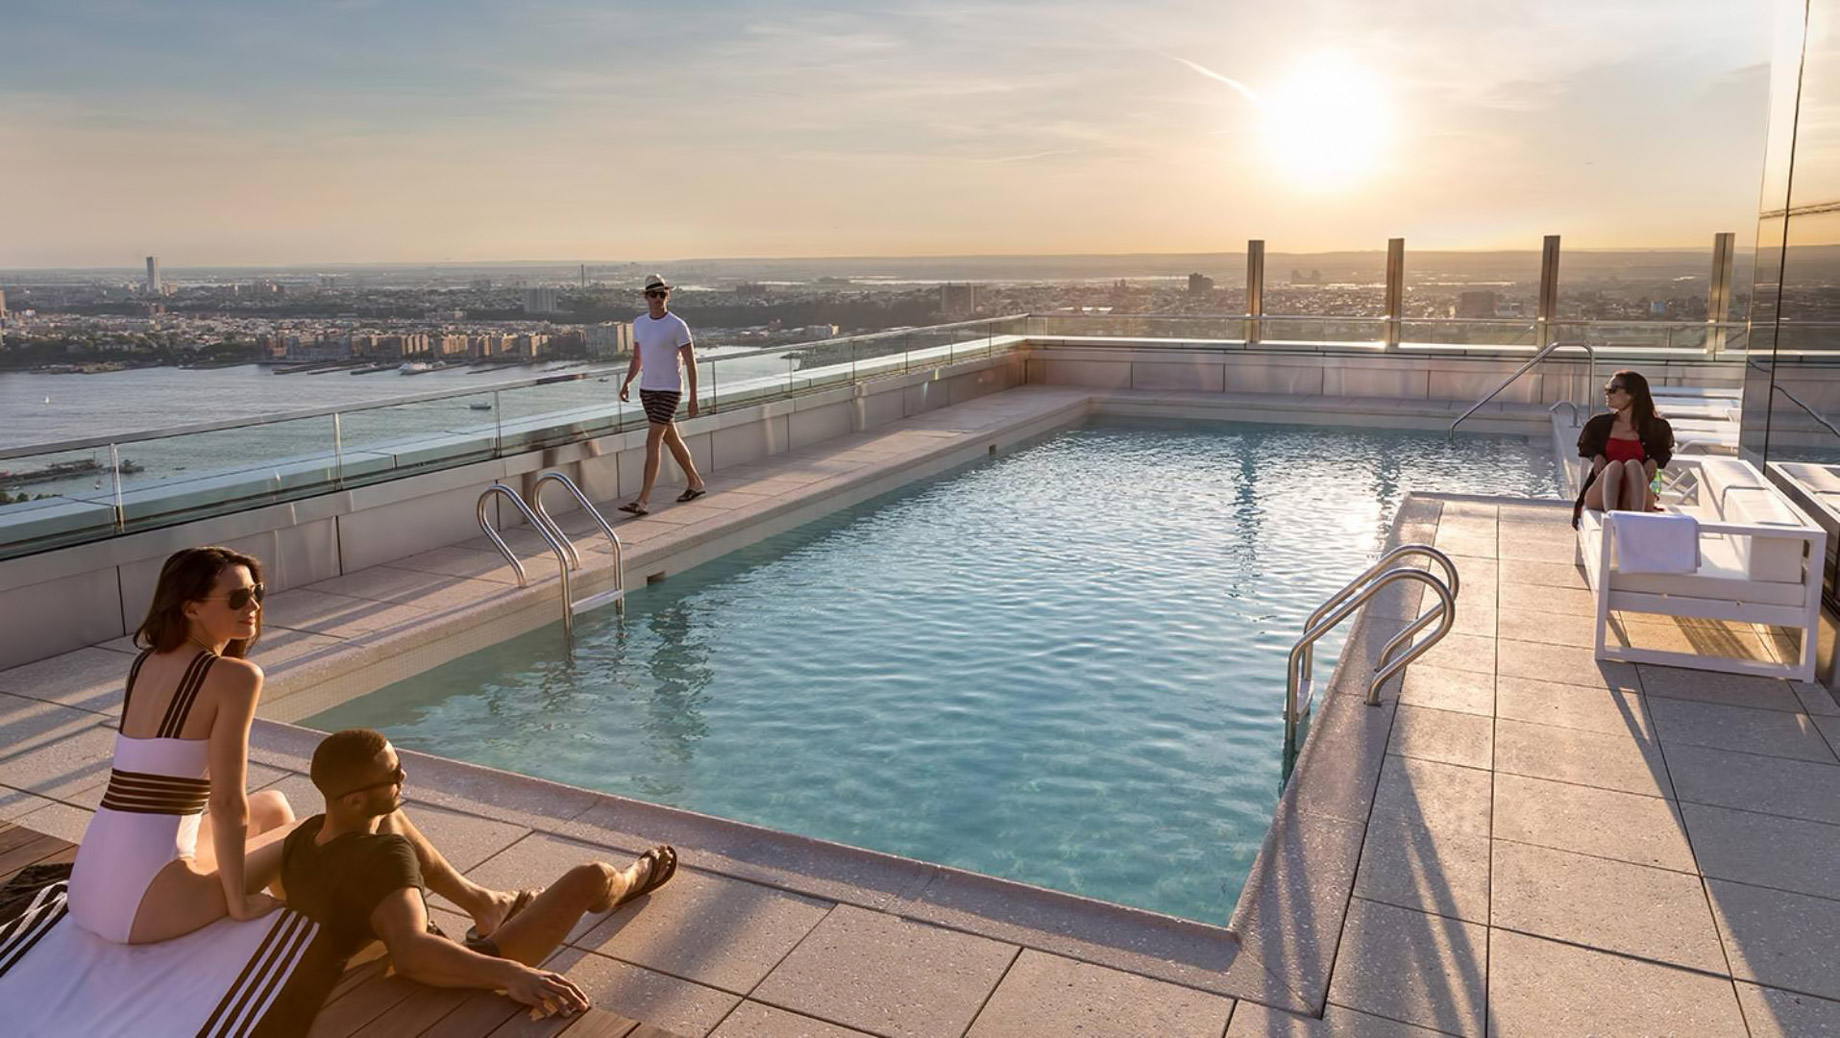 555TEN Rooftop Pool Deck - 555 10th Ave, New York, NY, USA